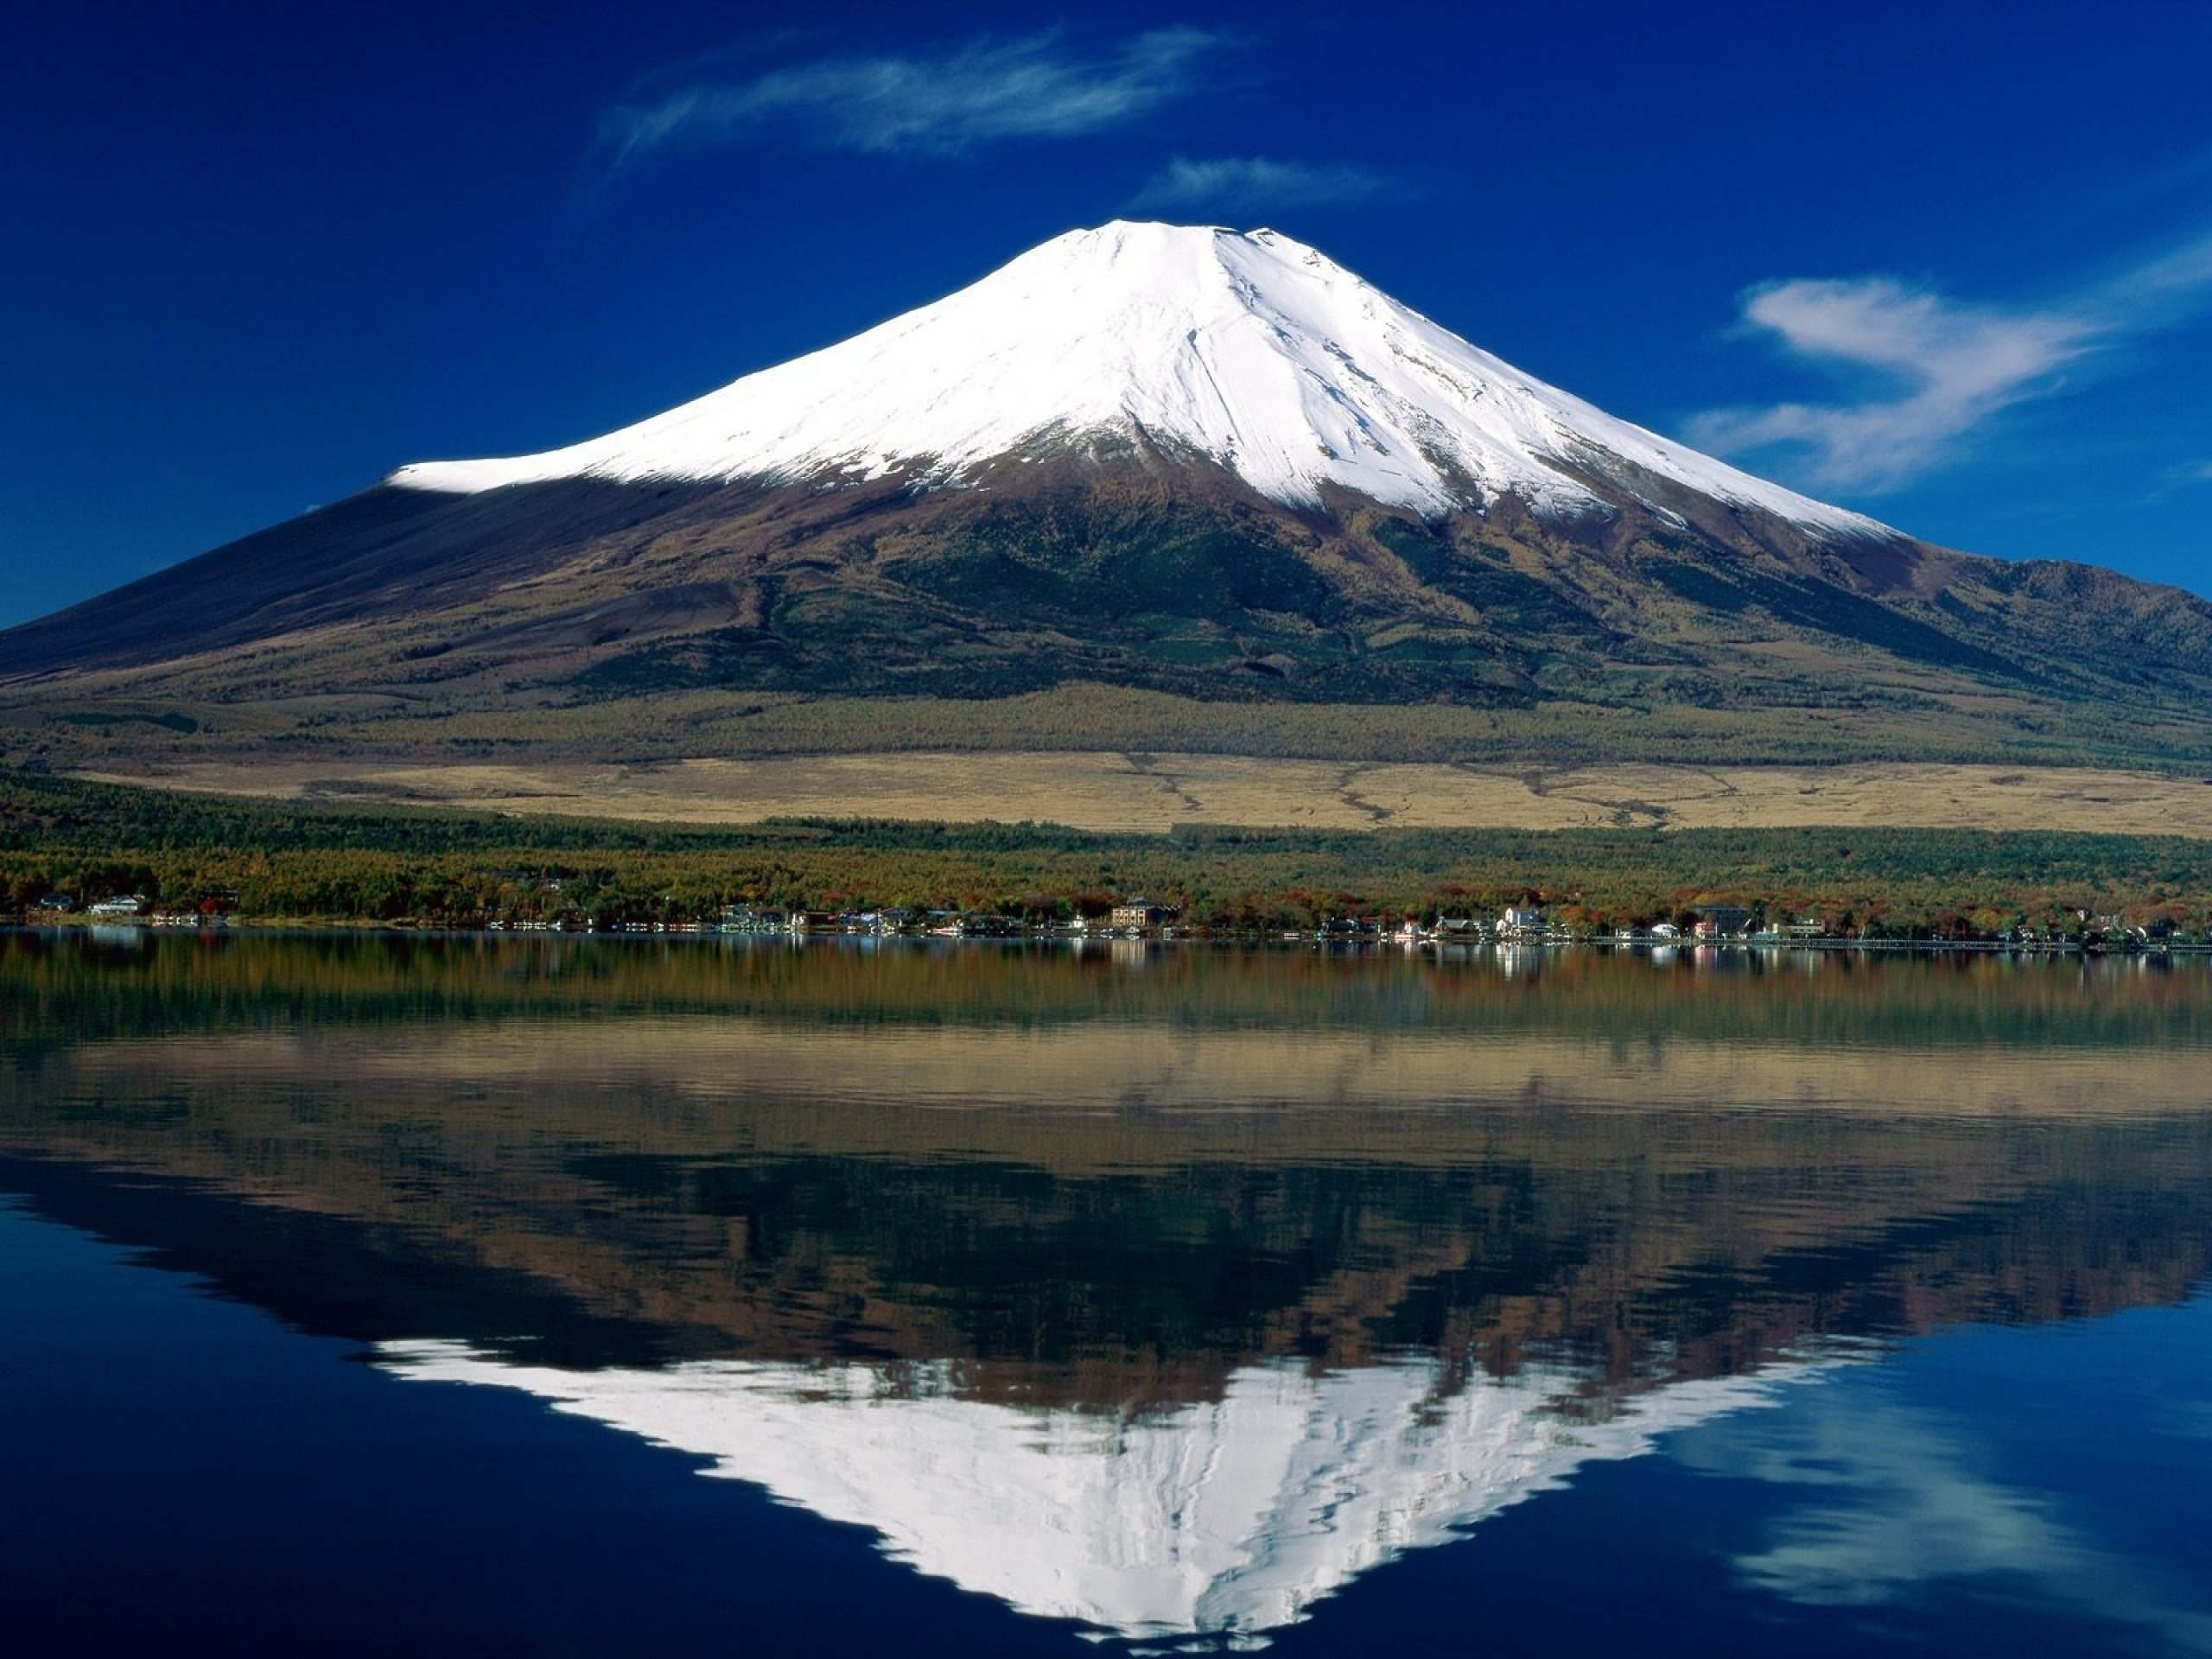 2560x1440 Japan Mount Fuji Lake Reflect Youtube Channel Cover